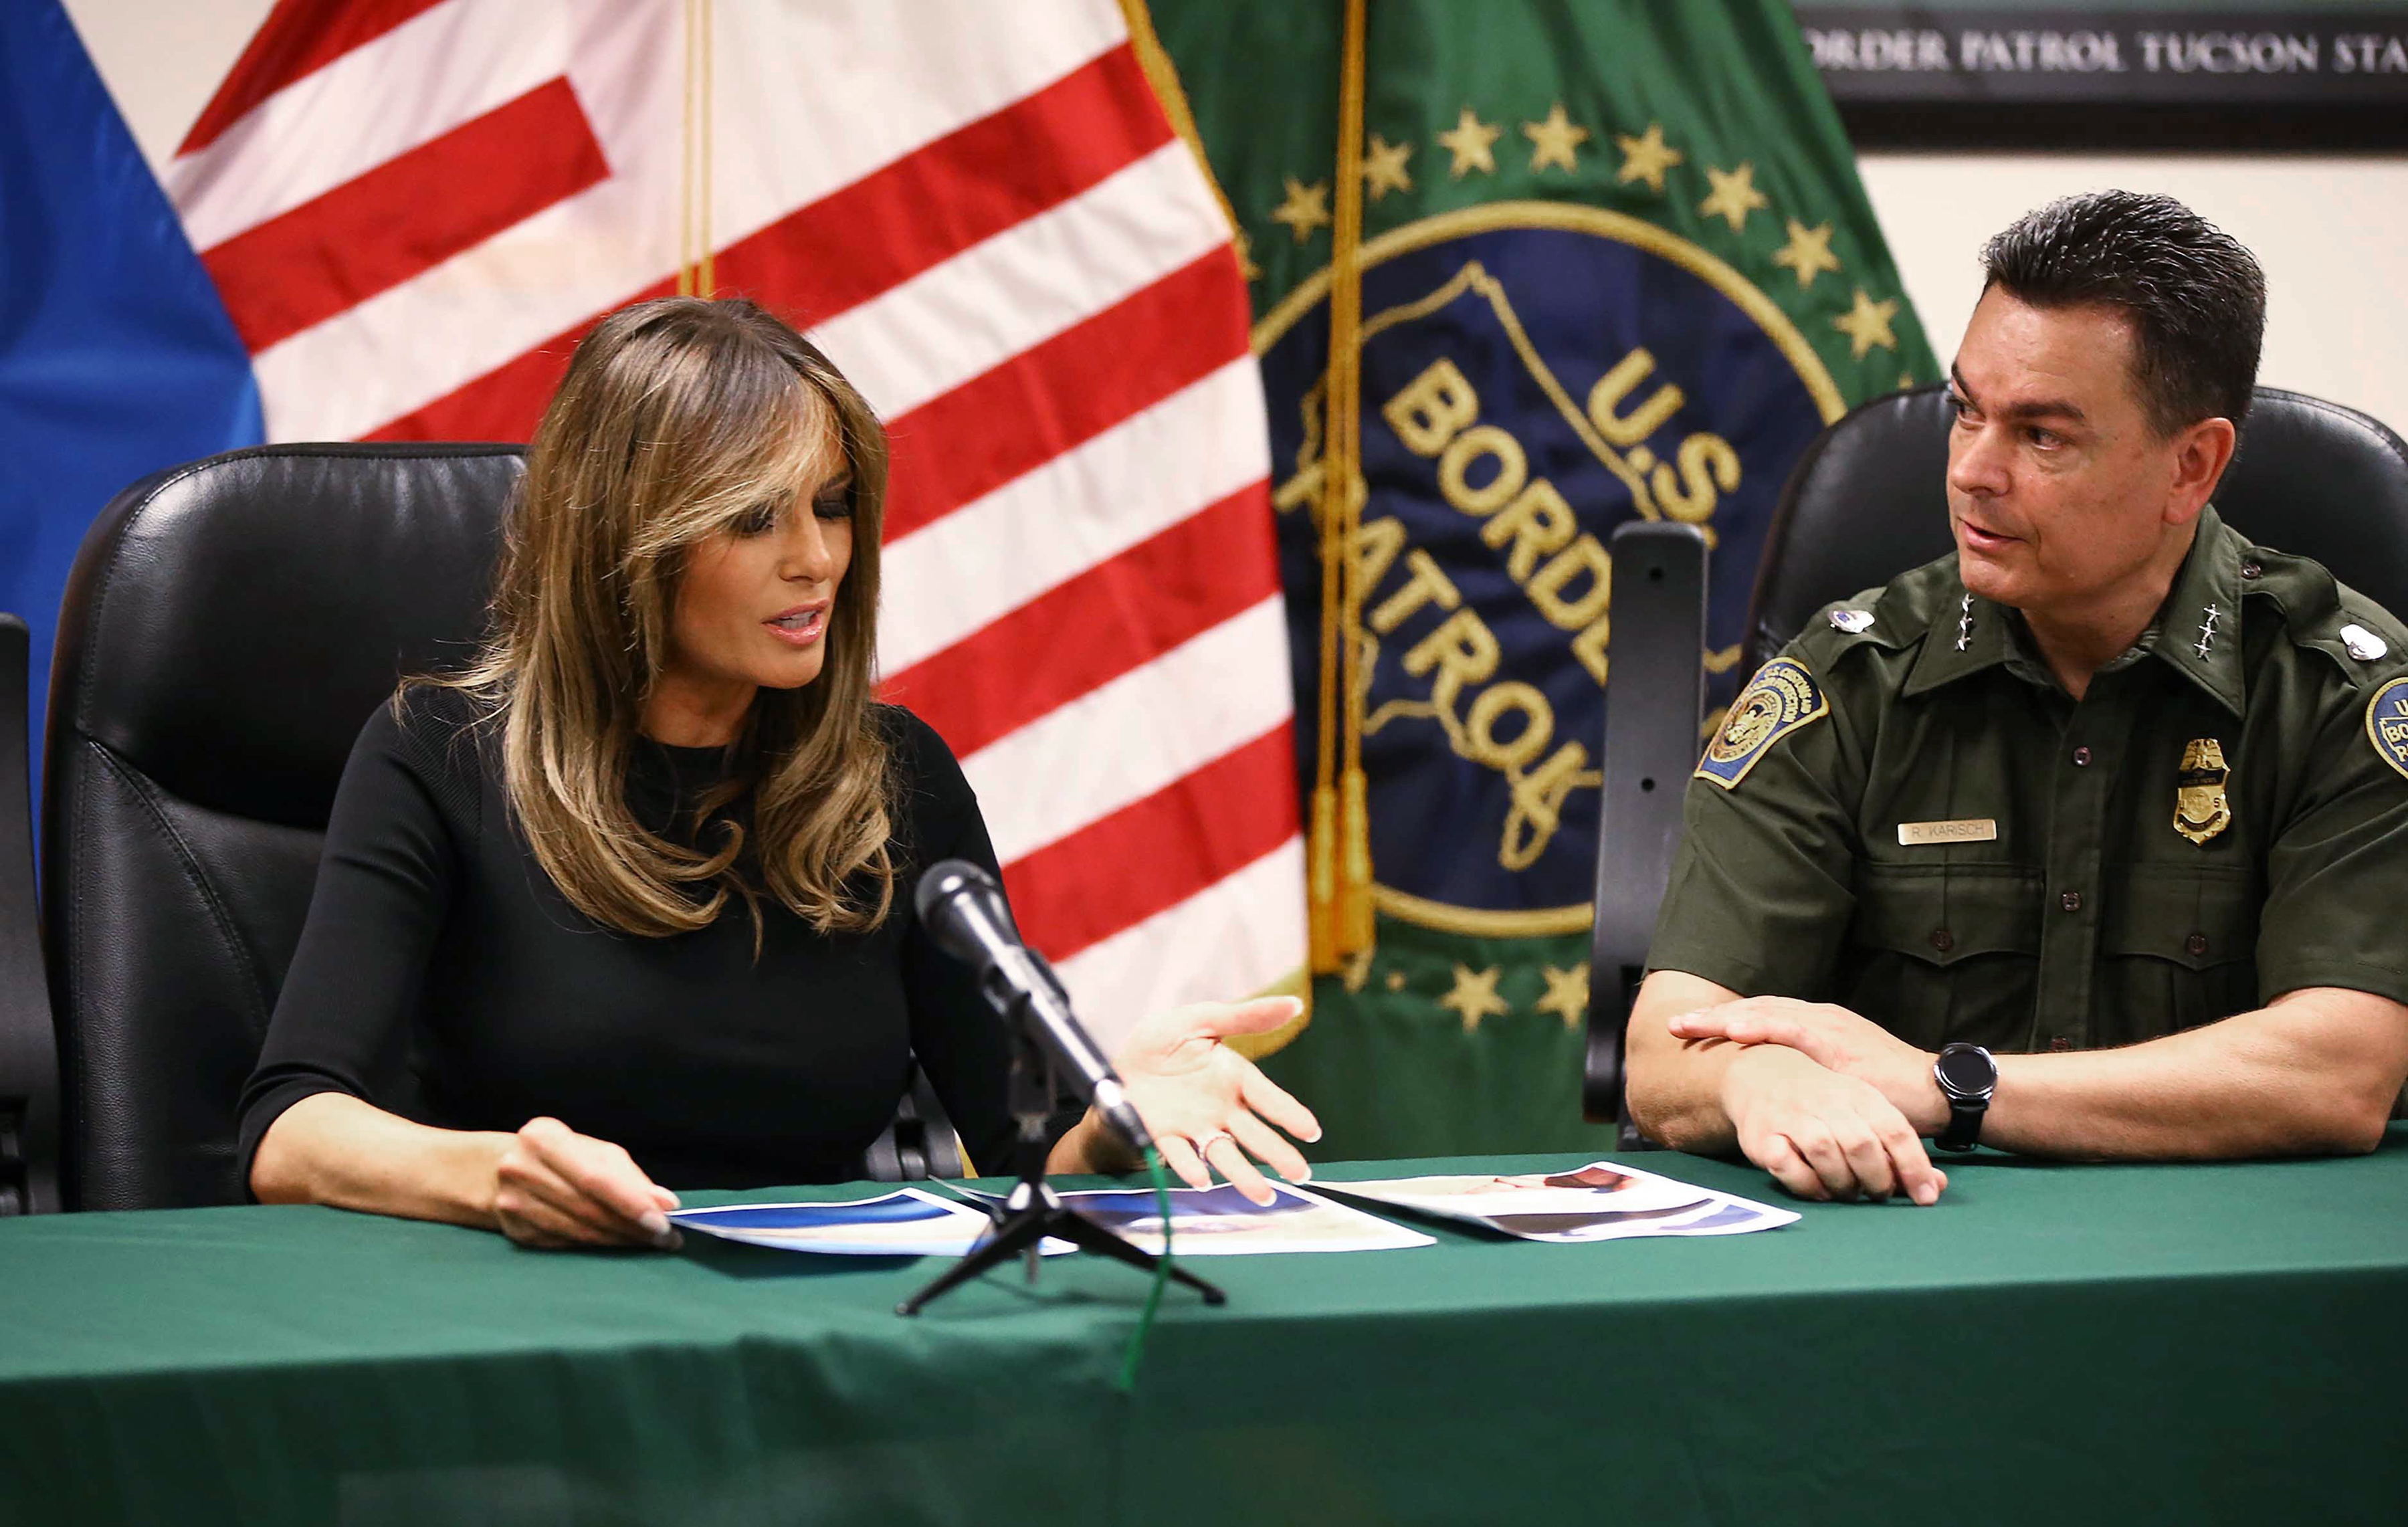 Melania Trump arrives in Tucson, Arizona to visit Border Patrol center